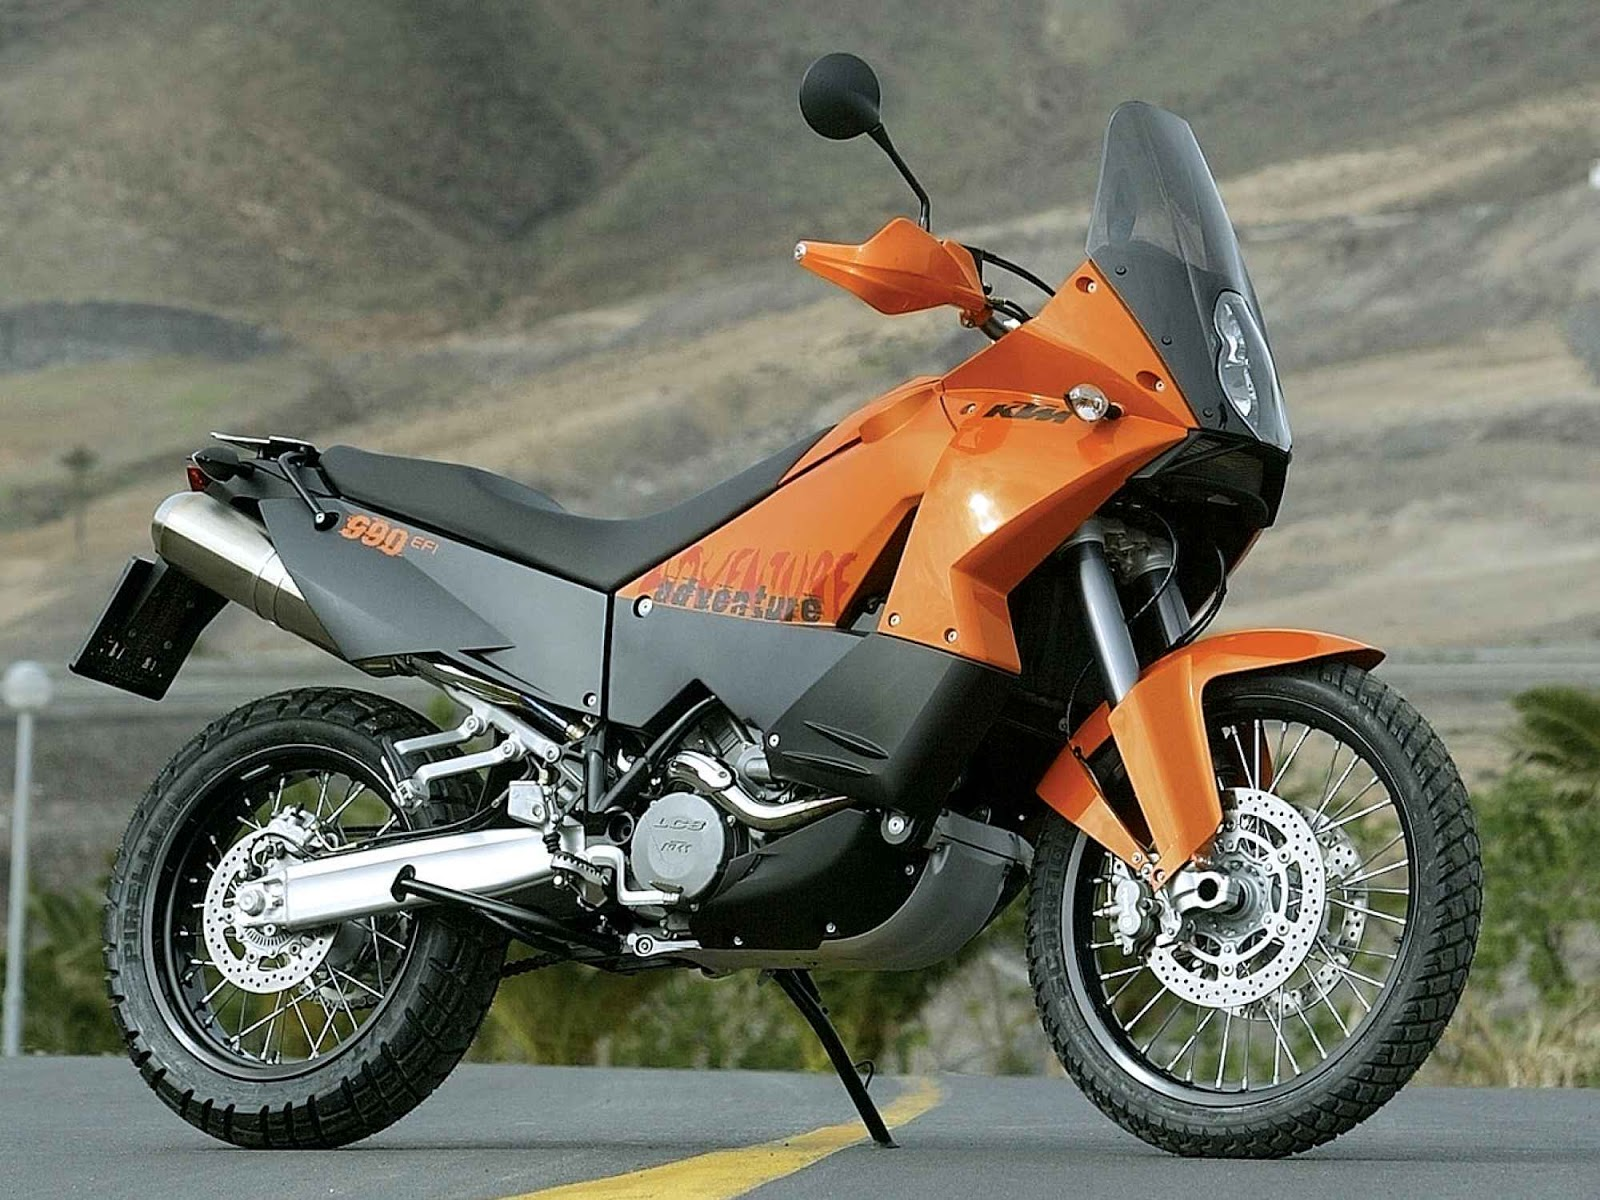 Ktm Duke Manual English